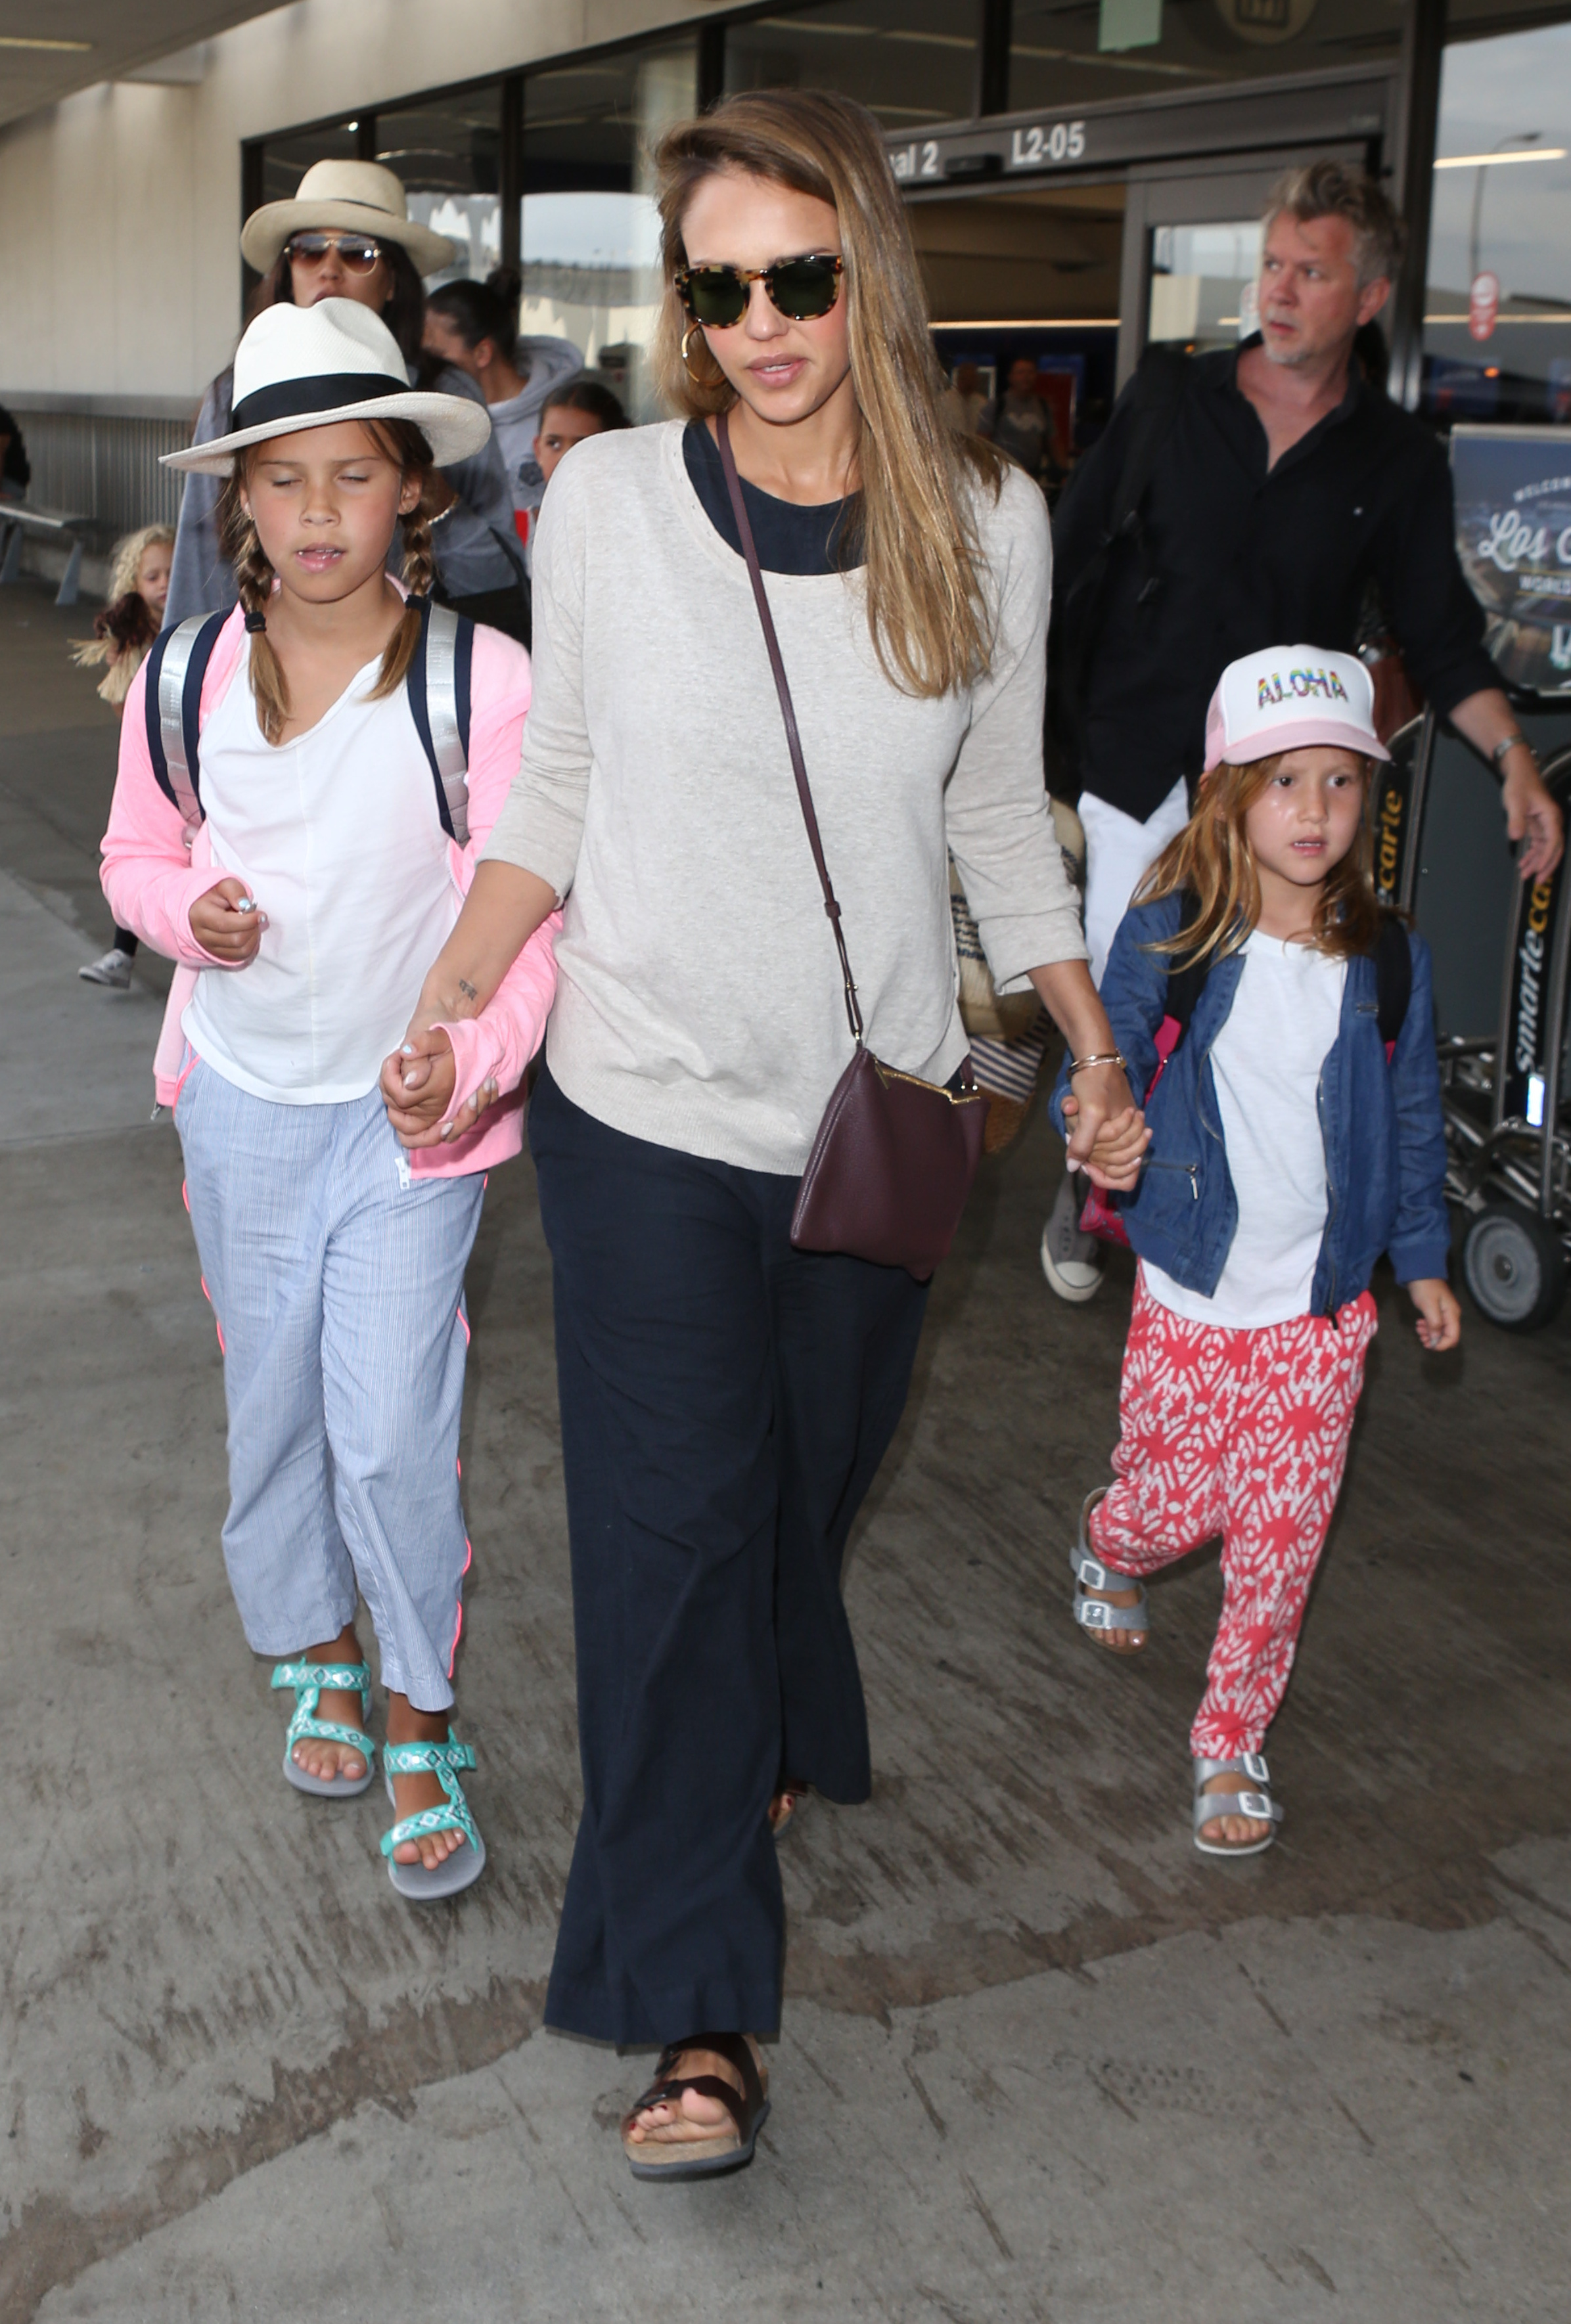 Jessica Alba arrives at LAX airport in Los Angeles with daughters Honor and Haven Warren on July 24, 2017.